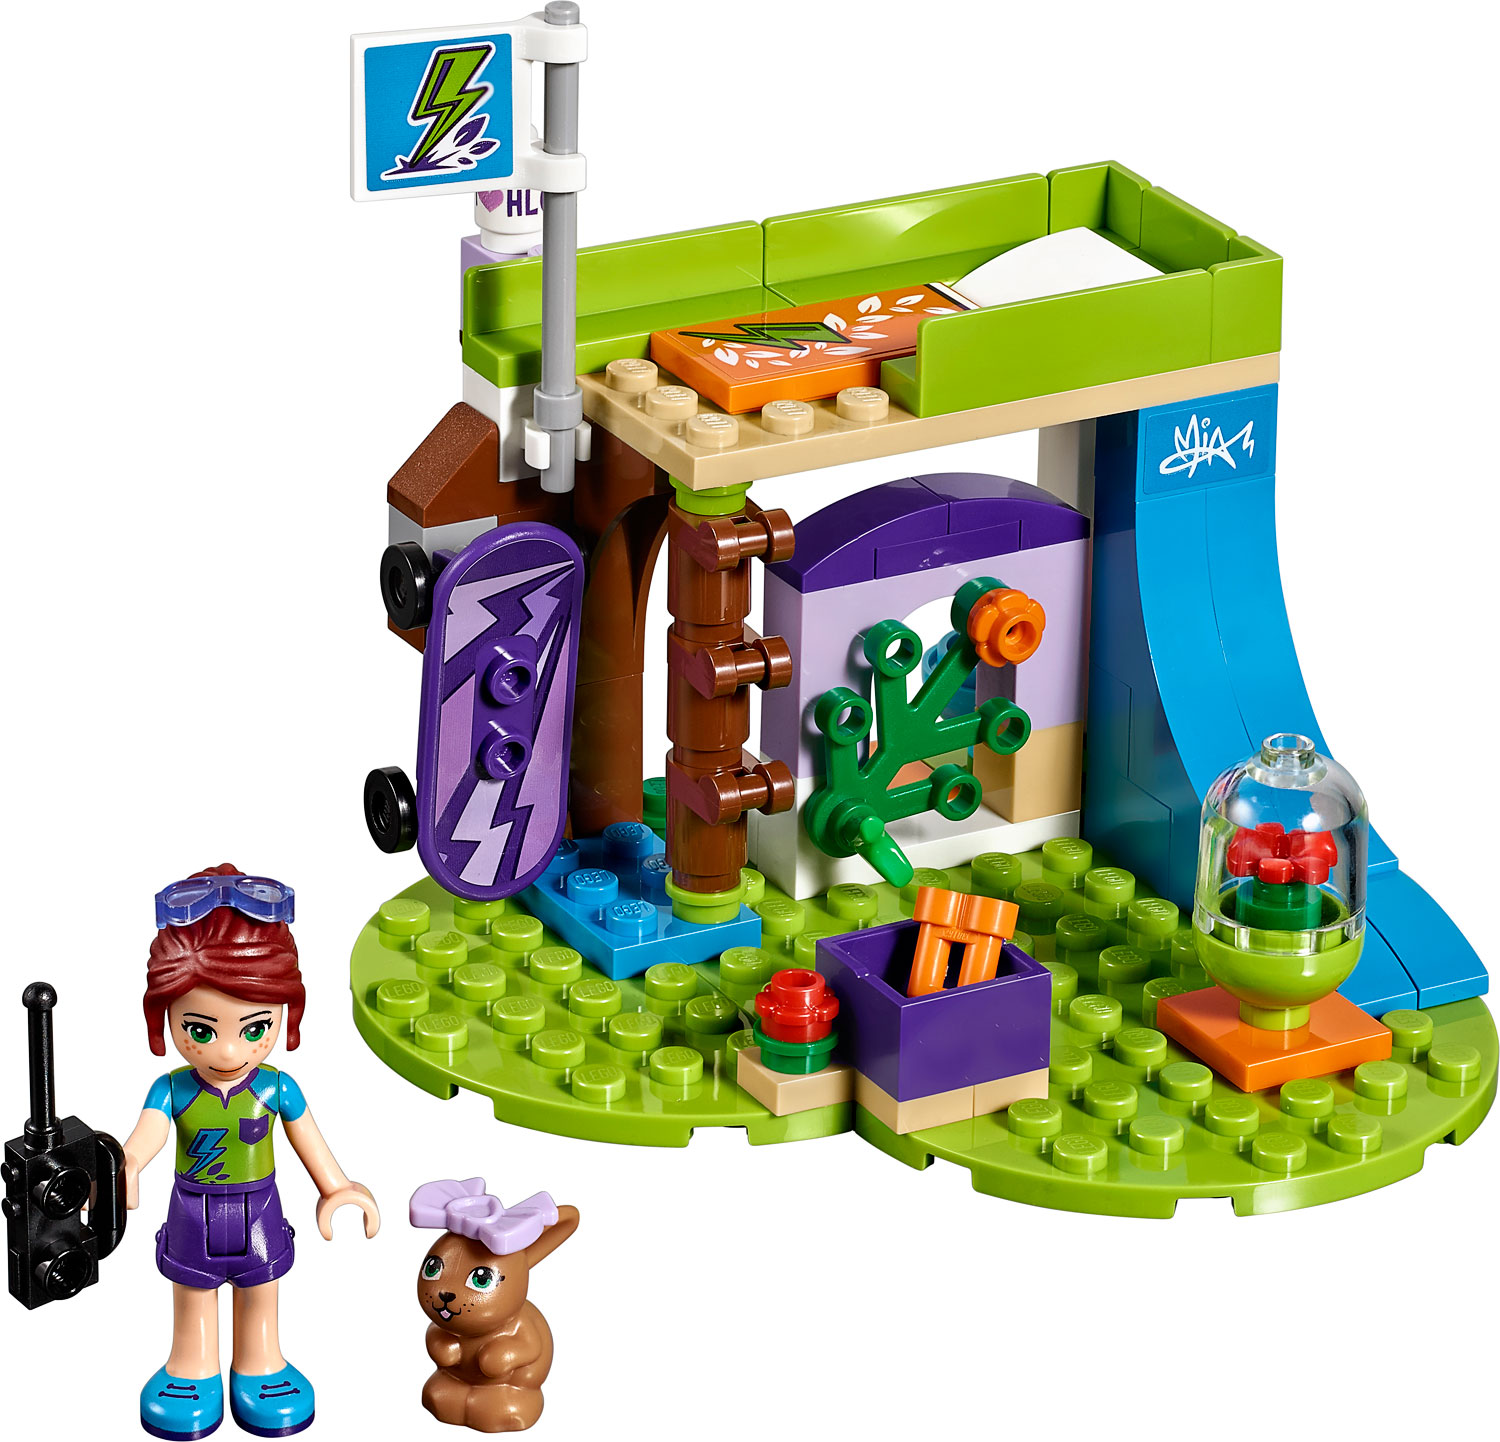 Lego Friends Mias Bedroom The Wooden Toy